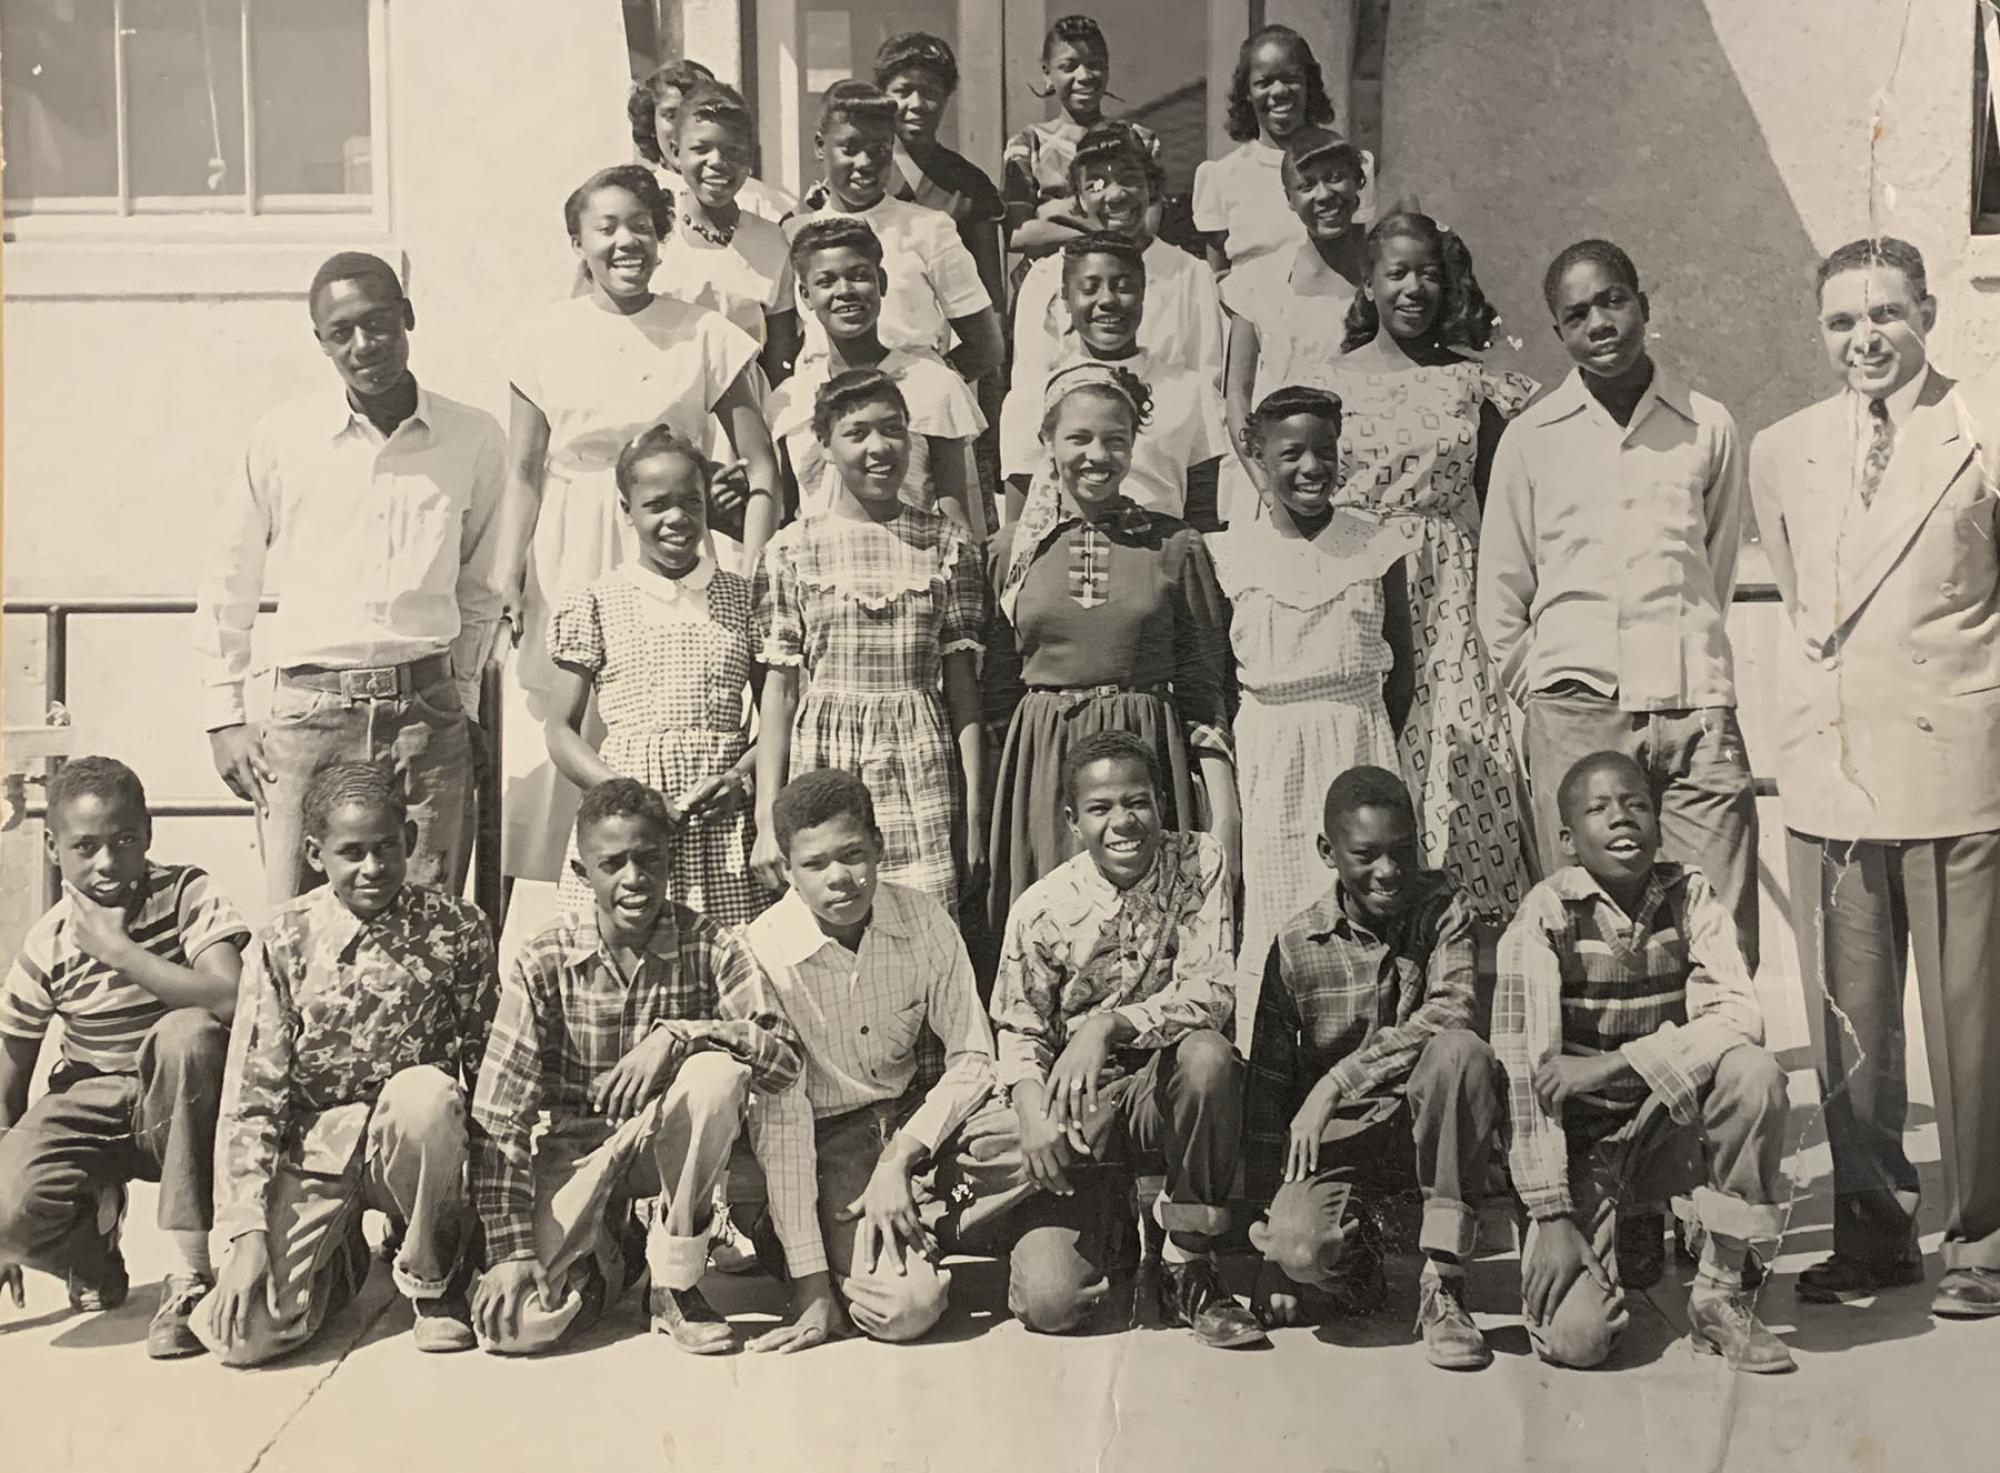 Dunbar School class photograph featuring Barbara Lewis, who is standing in the row second from the bottom, third from the left.